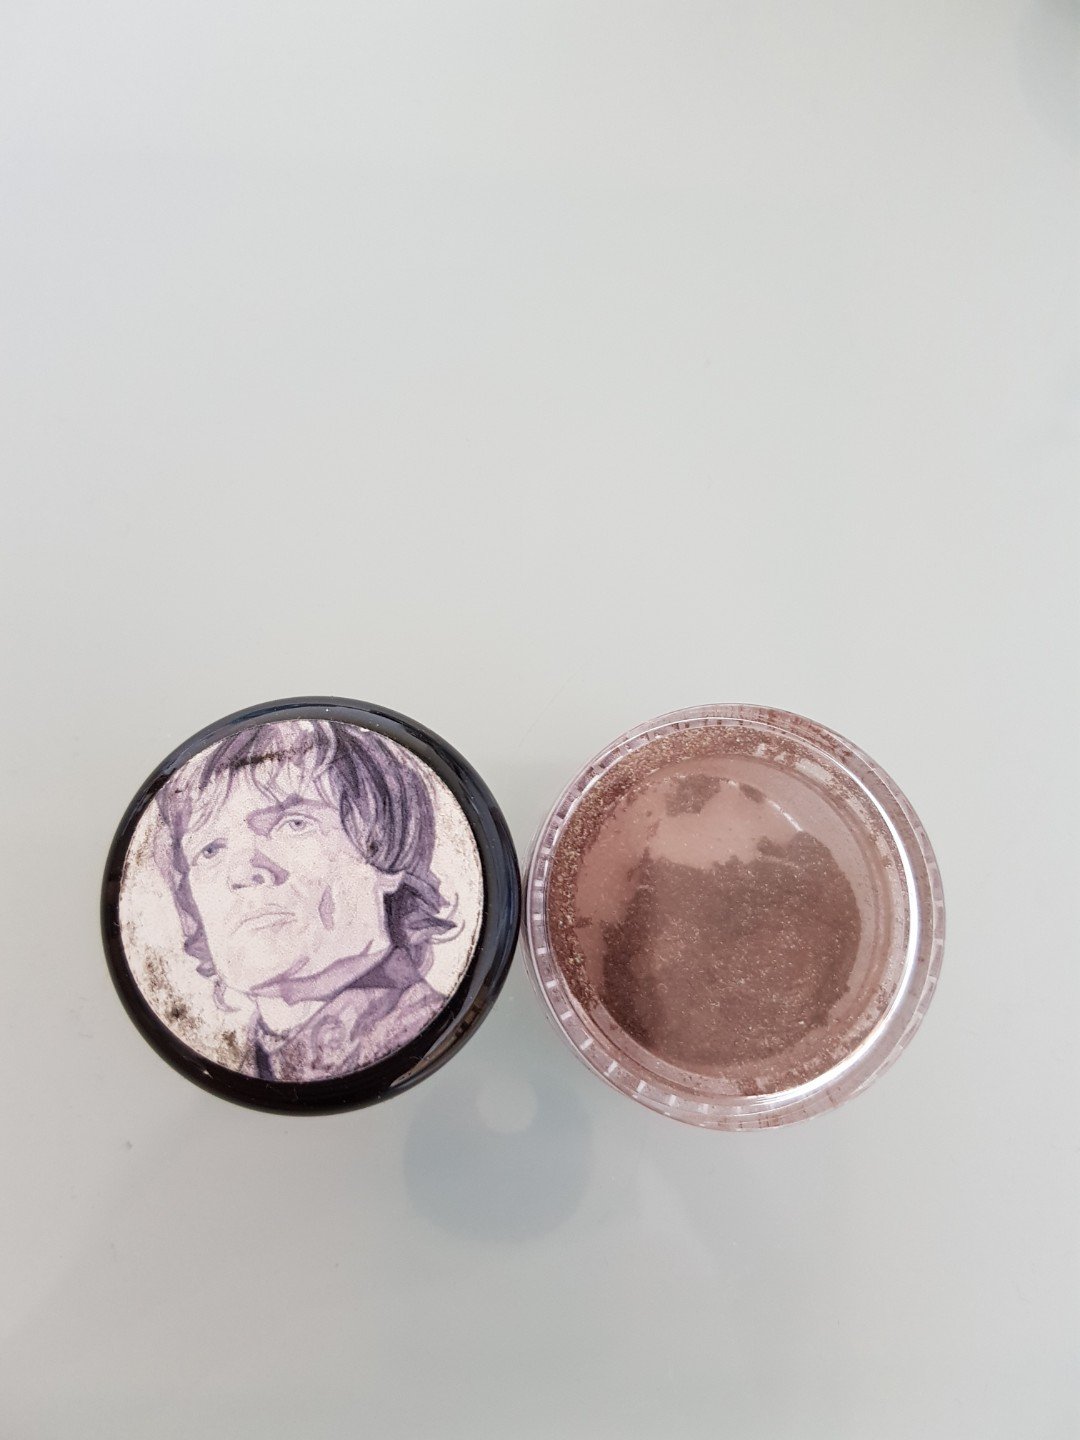 2 Shiro loose eyeshadows